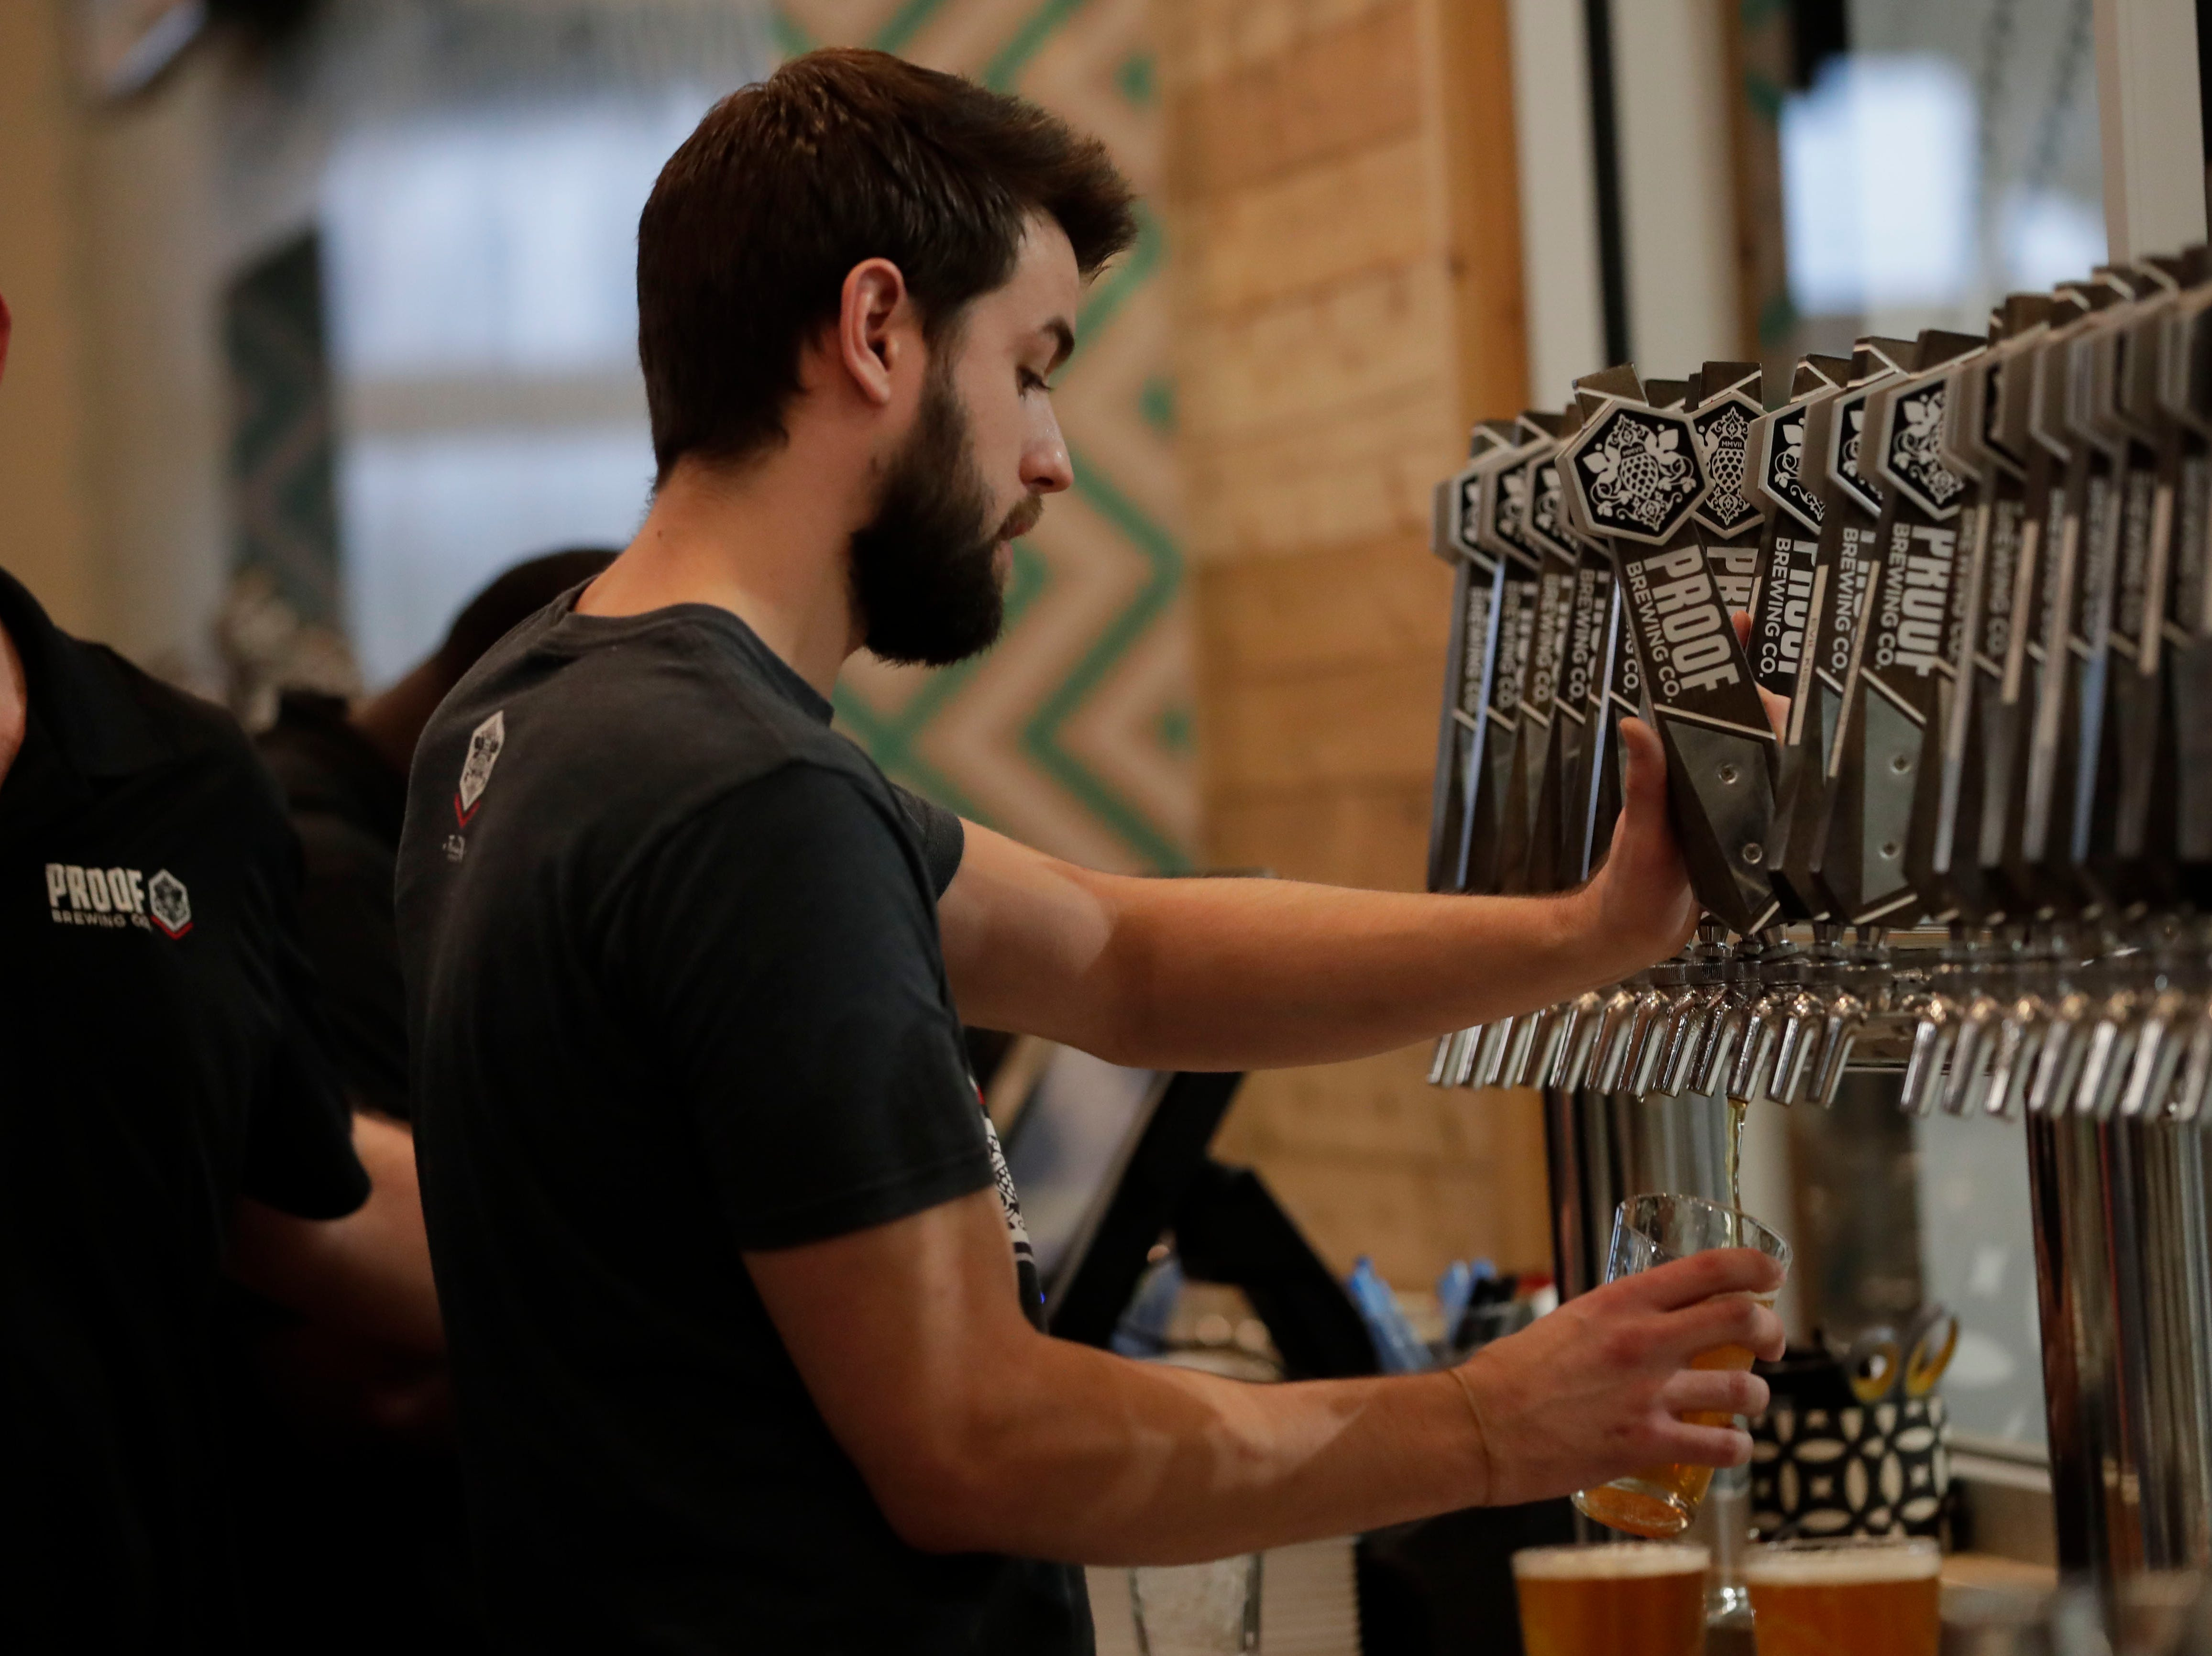 Kris Links, a bartender at Proof Brewery, pours drinks for customers during the soft opening of the new Proof Brewery, Friday, Feb. 1, 2019.